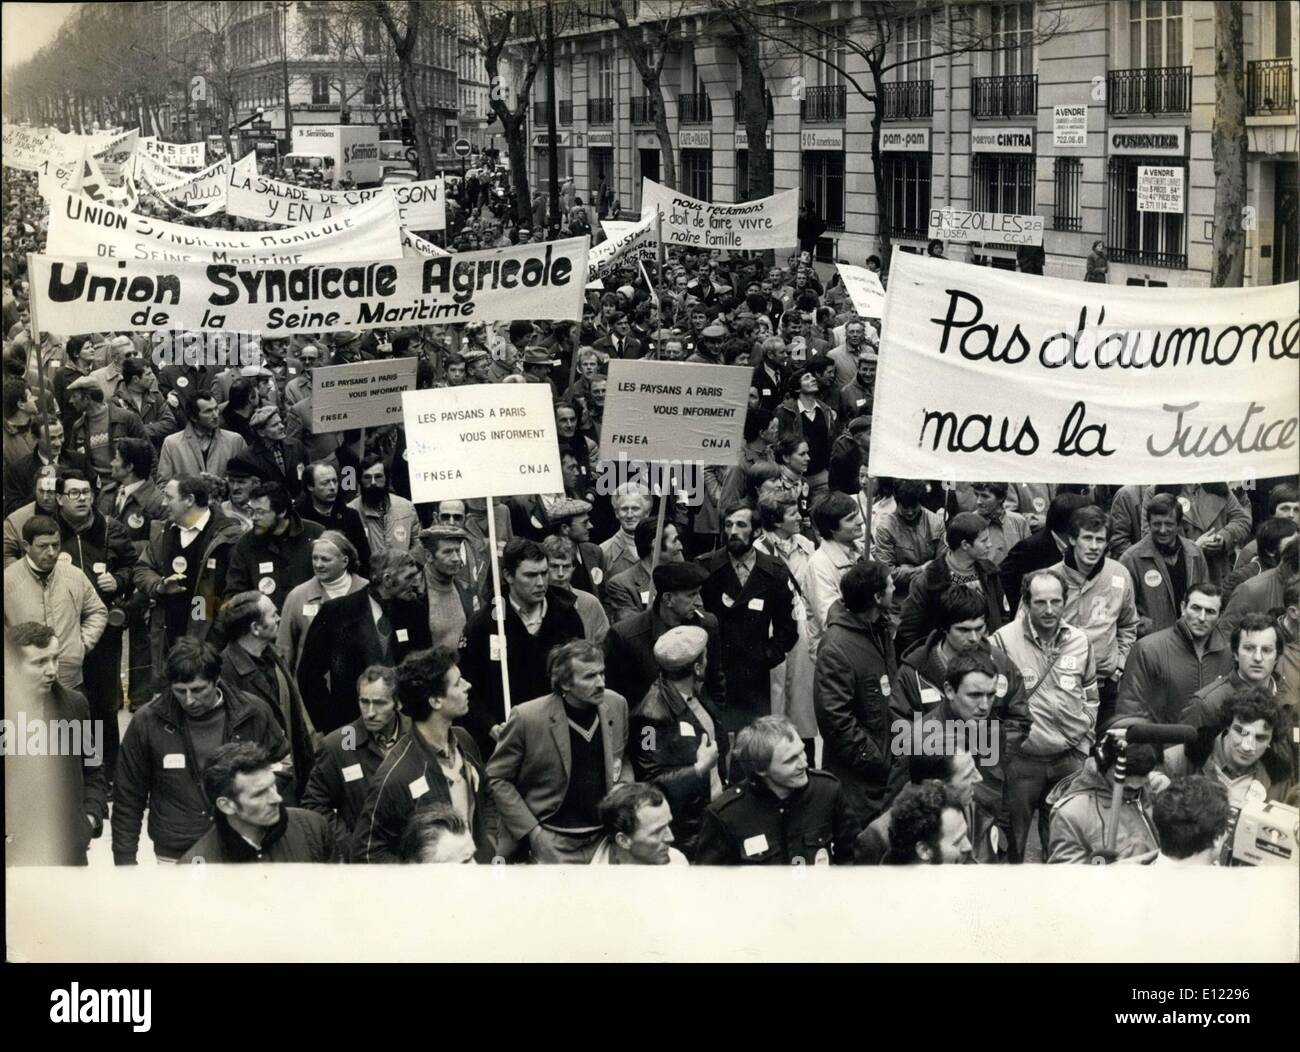 Mar. 03, 1982 - The farmers were protesting for fixed European prices and against the lowering of their revenues. The protesters walked from the Place de la Nation to the Porte de Pantin, where a meeting took place, then they passed by the Republique, and the Eastern sta - Stock Image